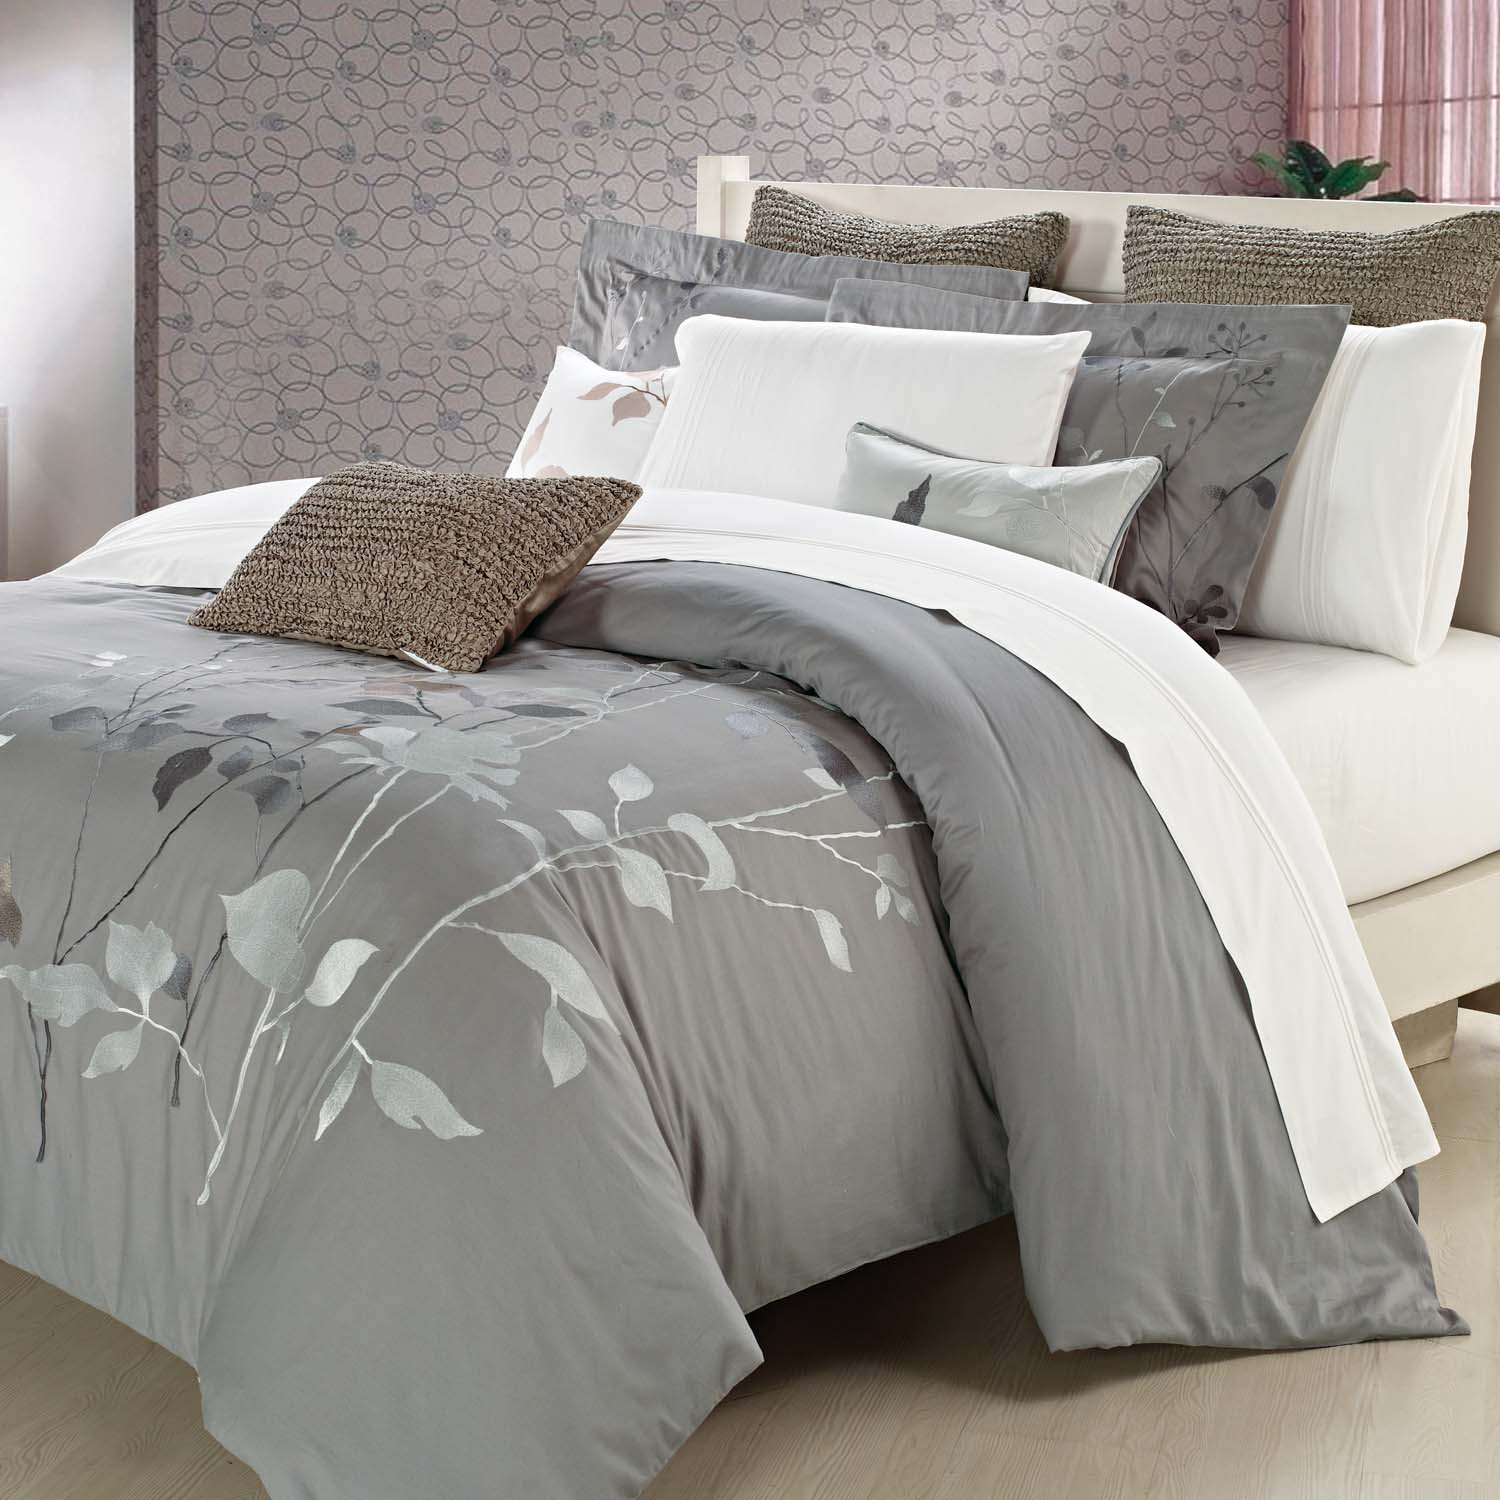 Bedroom: Gorgeous Queen Bedding Sets For Bedroom